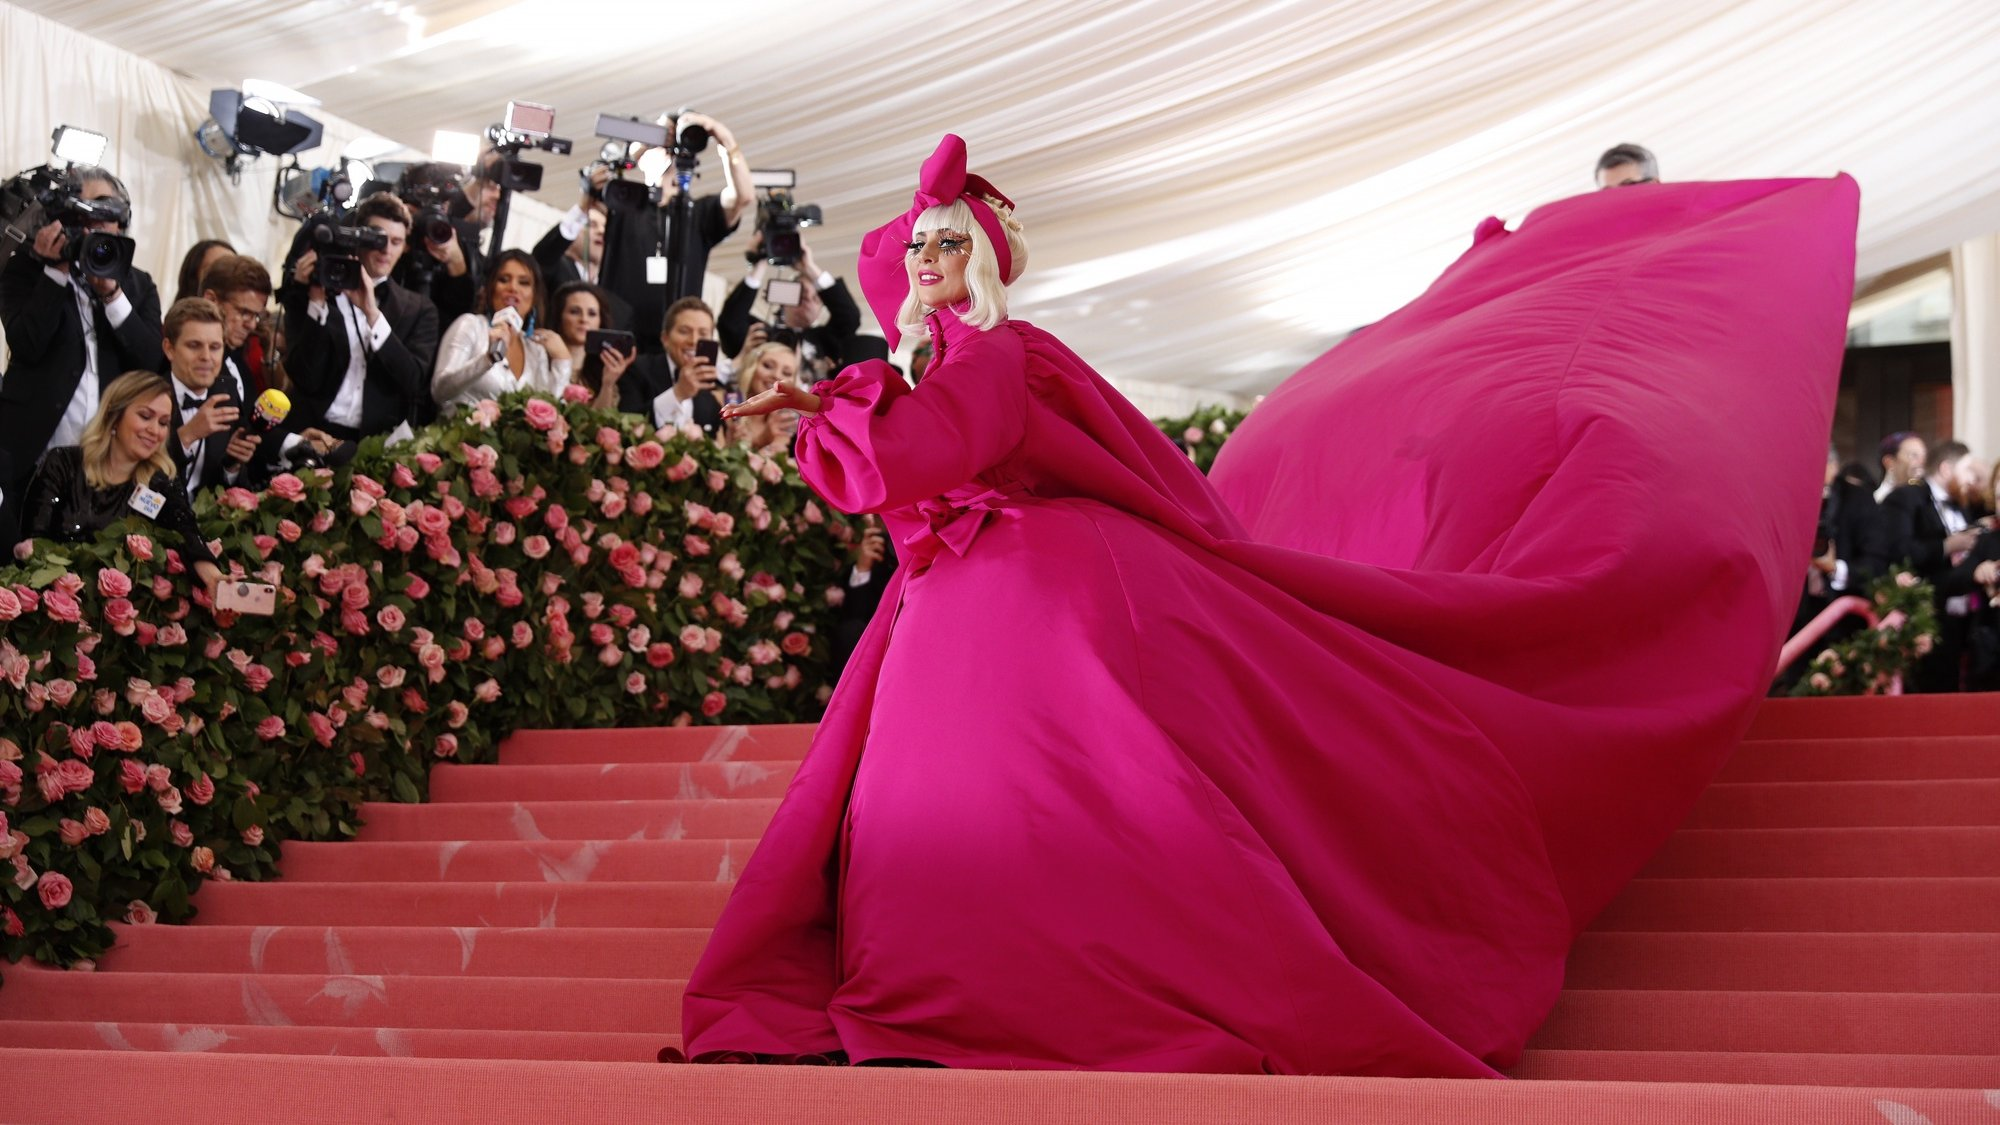 epaselect epa07552043 Lady Gaga arrives on the red carpet for the 2019 Met Gala, the annual benefit for the Metropolitan Museum of Art's Costume Institute, in New York, New York, USA, 06 May 2019. The event coincides with the Met Costume Institute's new spring 2019 exhibition, 'Camp: Notes on Fashion', which runs from 09 May until 08 September 2019.  EPA/JUSTIN LANE